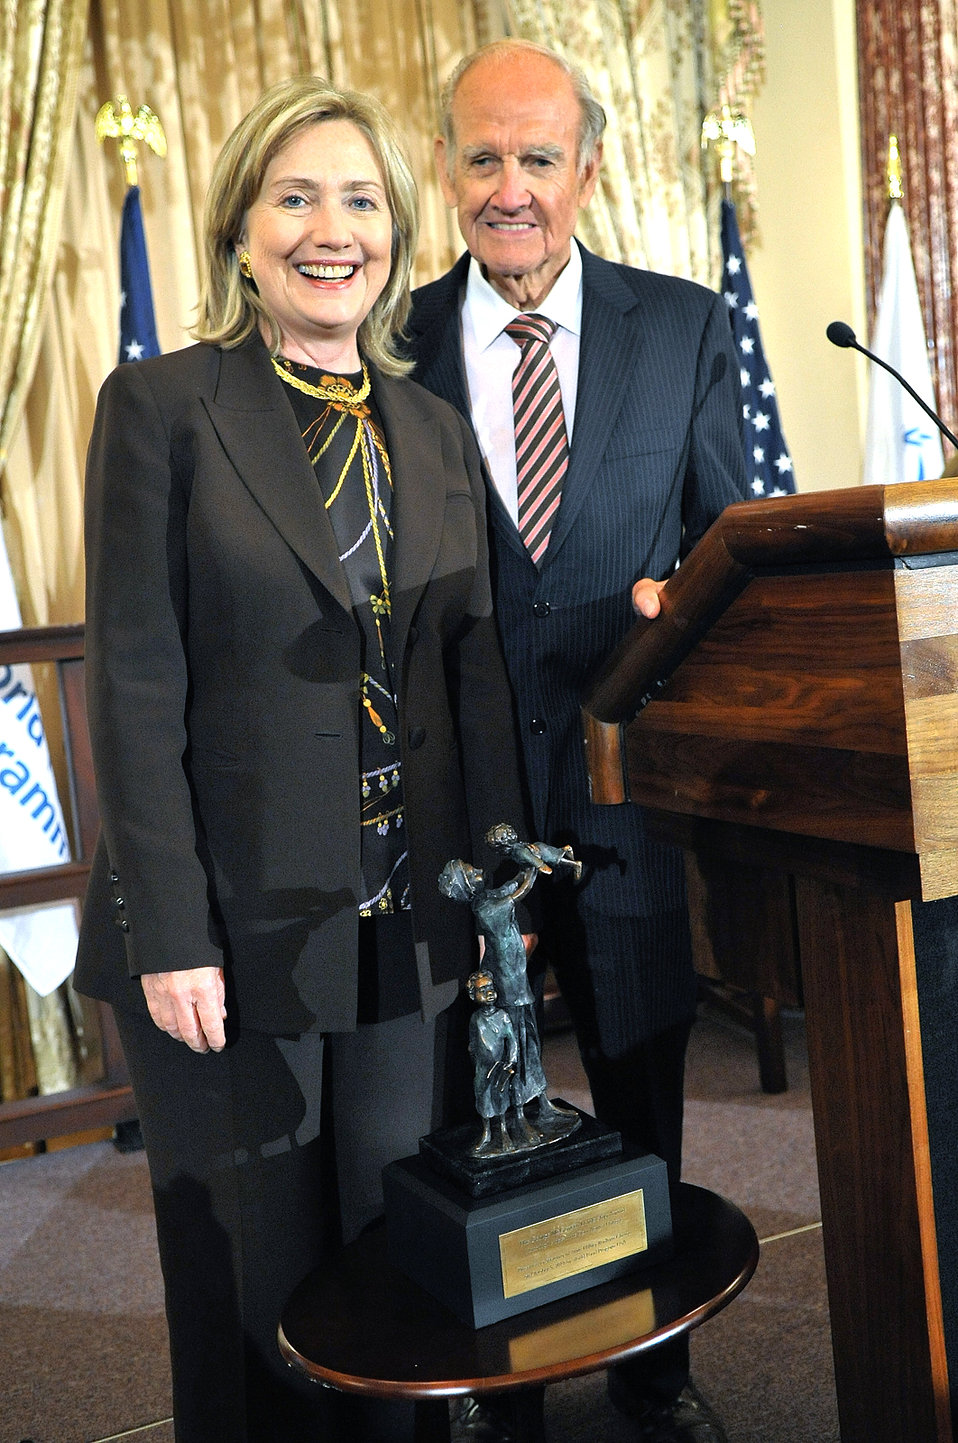 Secretary Clinton Accepts the McGovern Award for 'Leadership in the Fight Against Hunger'